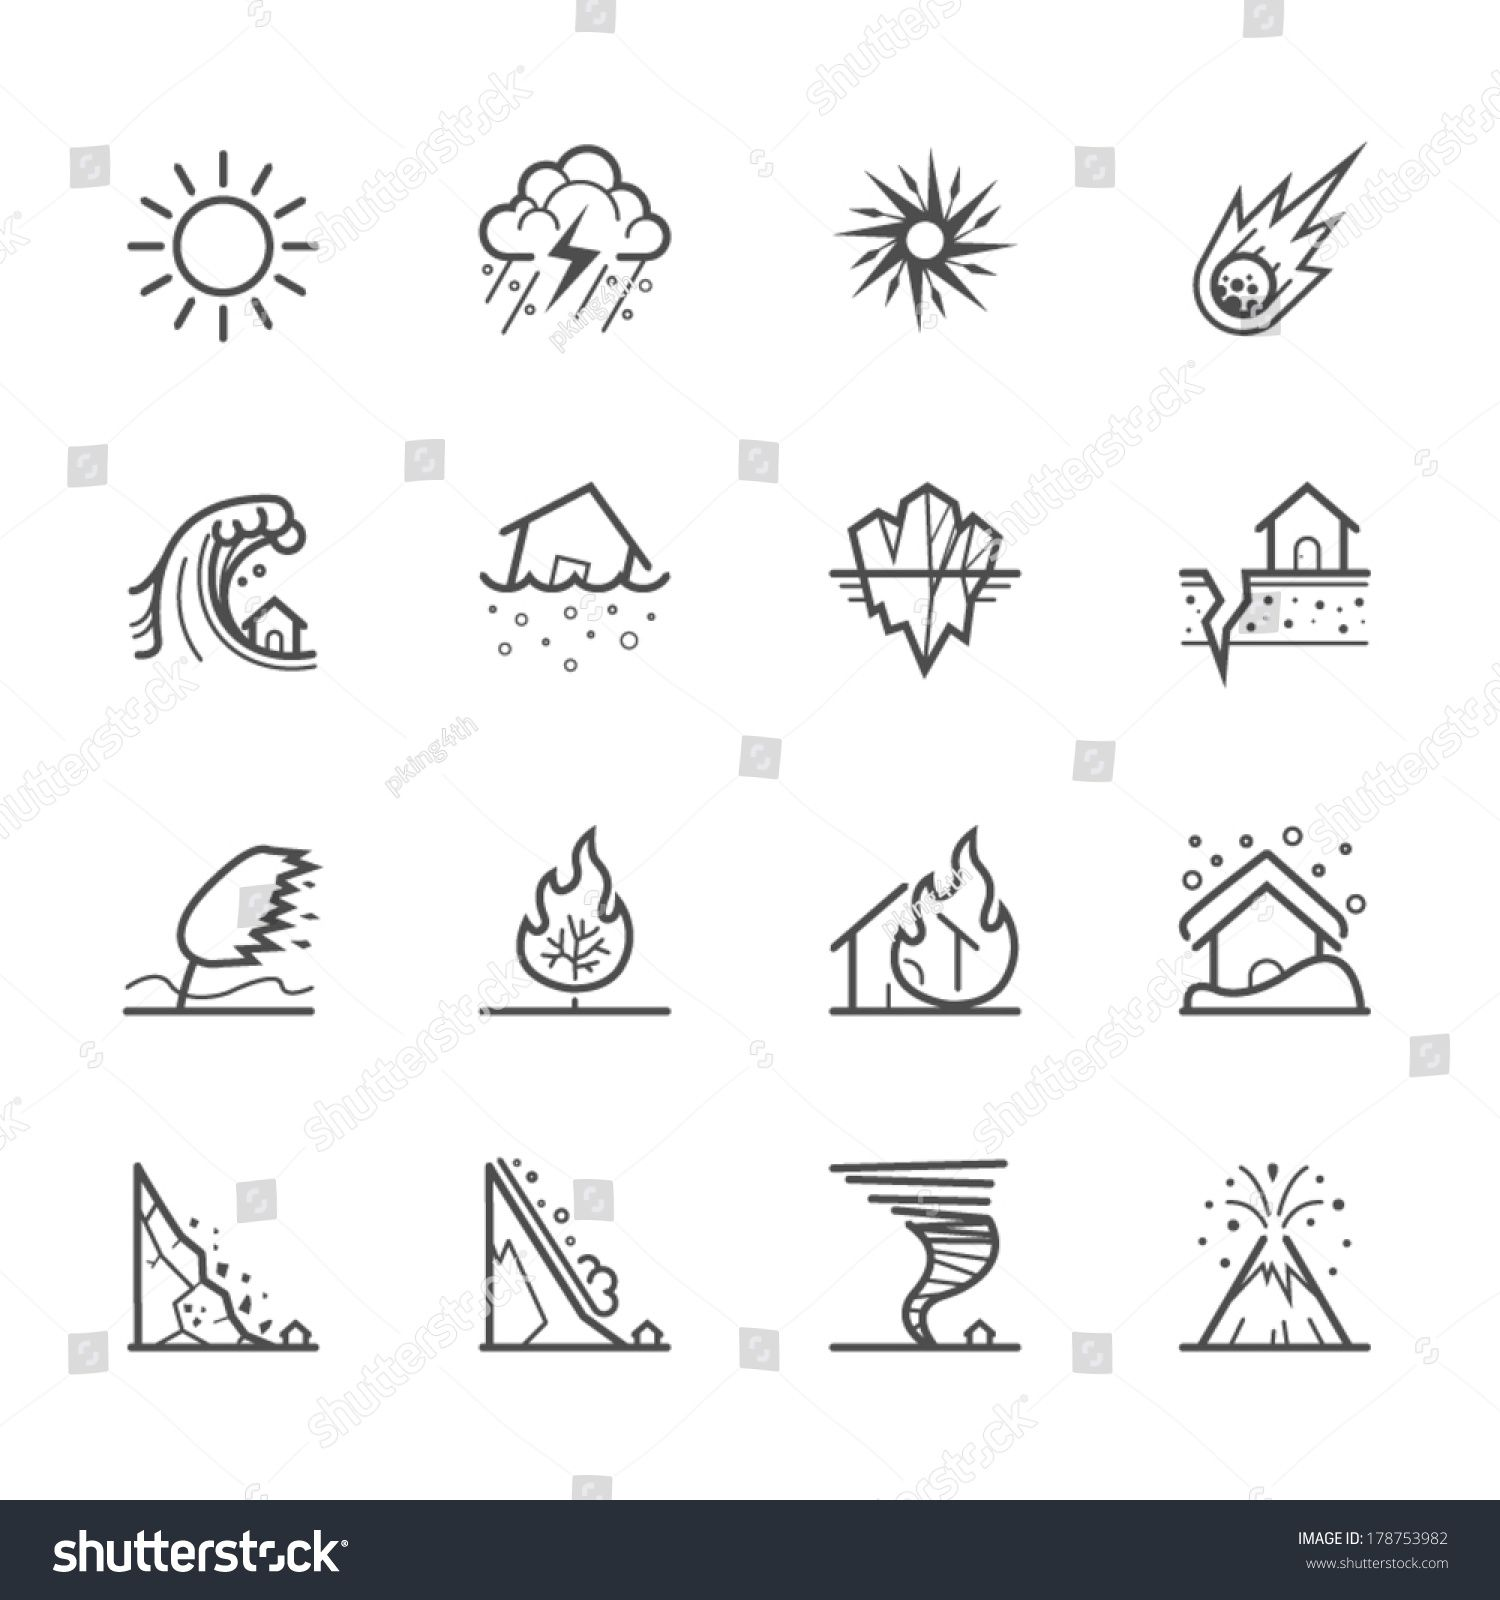 Natural Disaster Icons Sponsored Ad Natural Disaster Icons In 2020 Mini Drawings Easy Love Drawings Natural Disasters